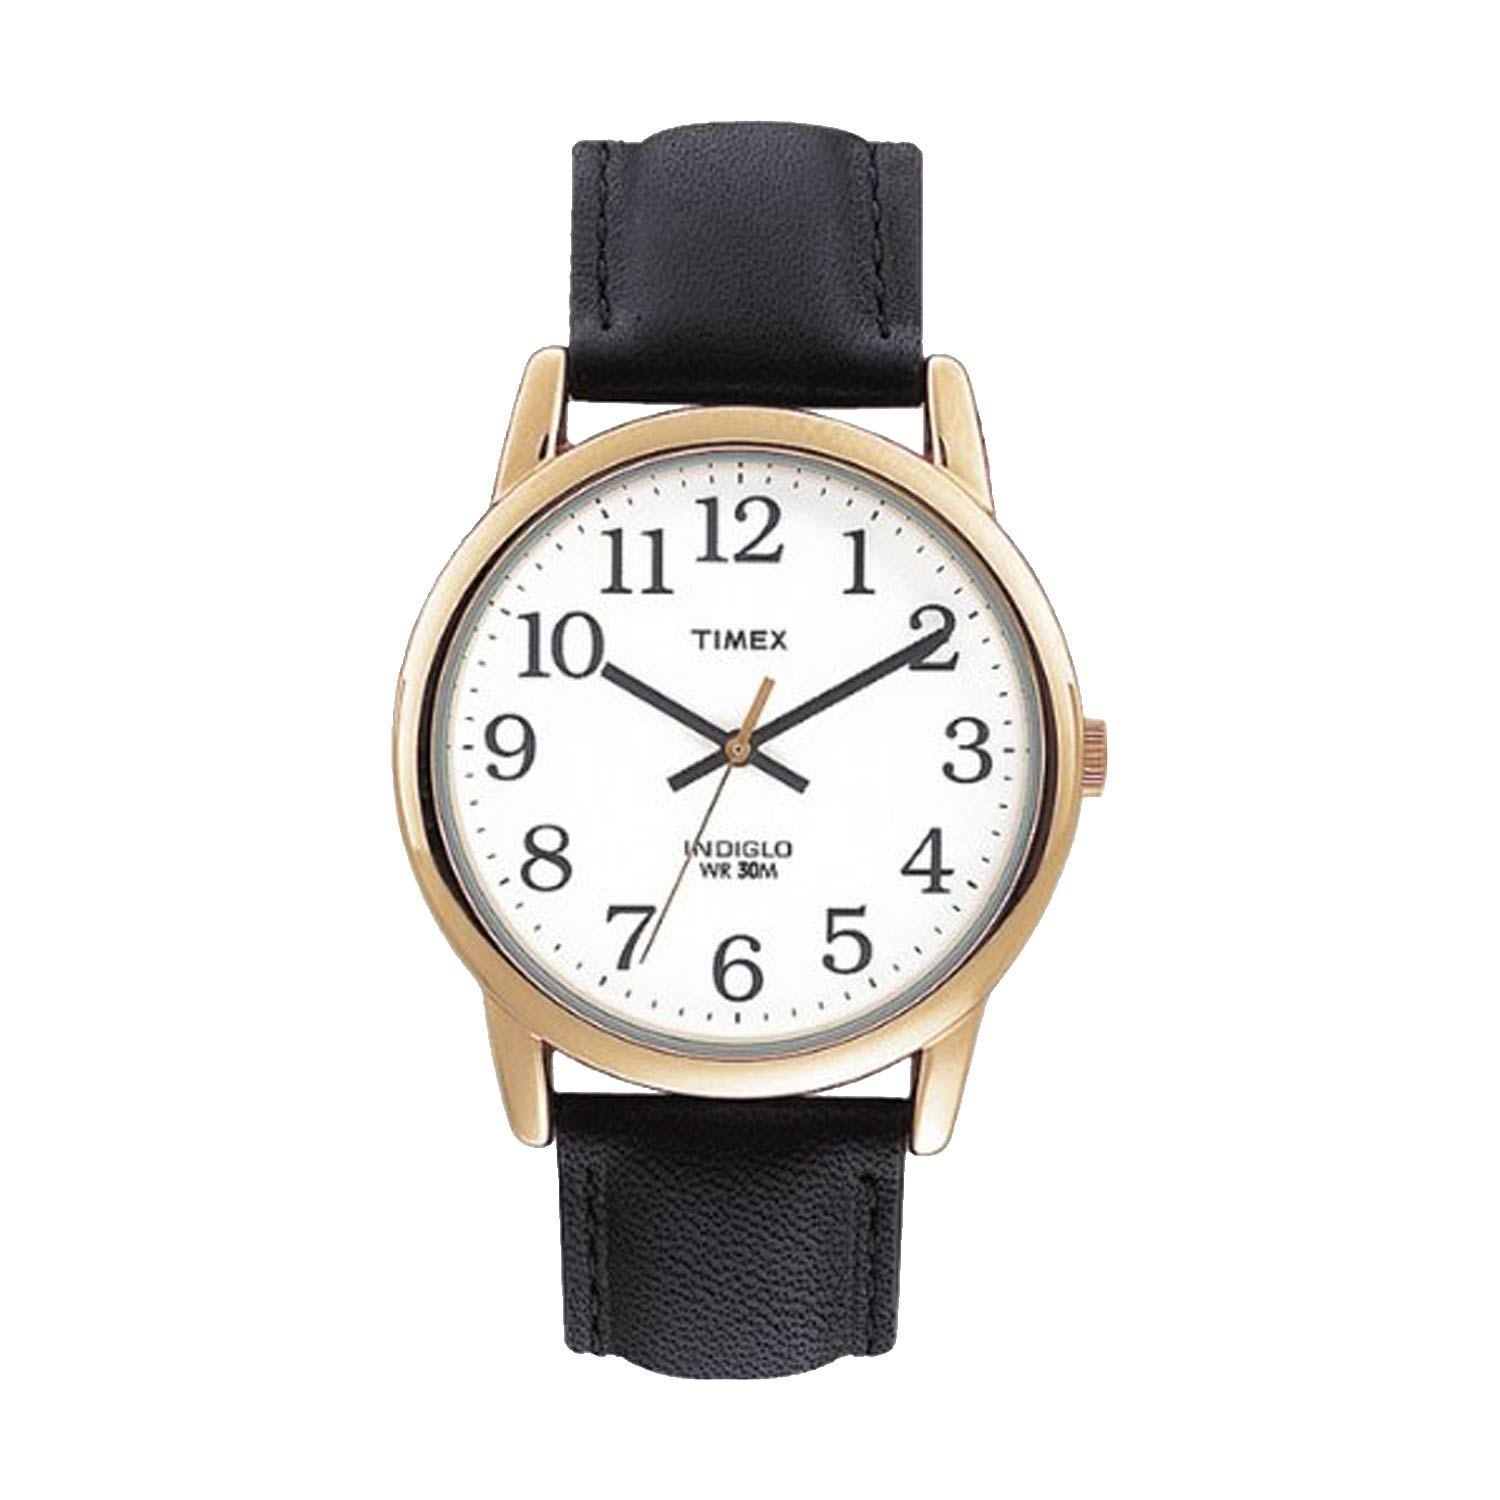 timex easy reader t20491 herren business uhr in gold wei schwarz. Black Bedroom Furniture Sets. Home Design Ideas